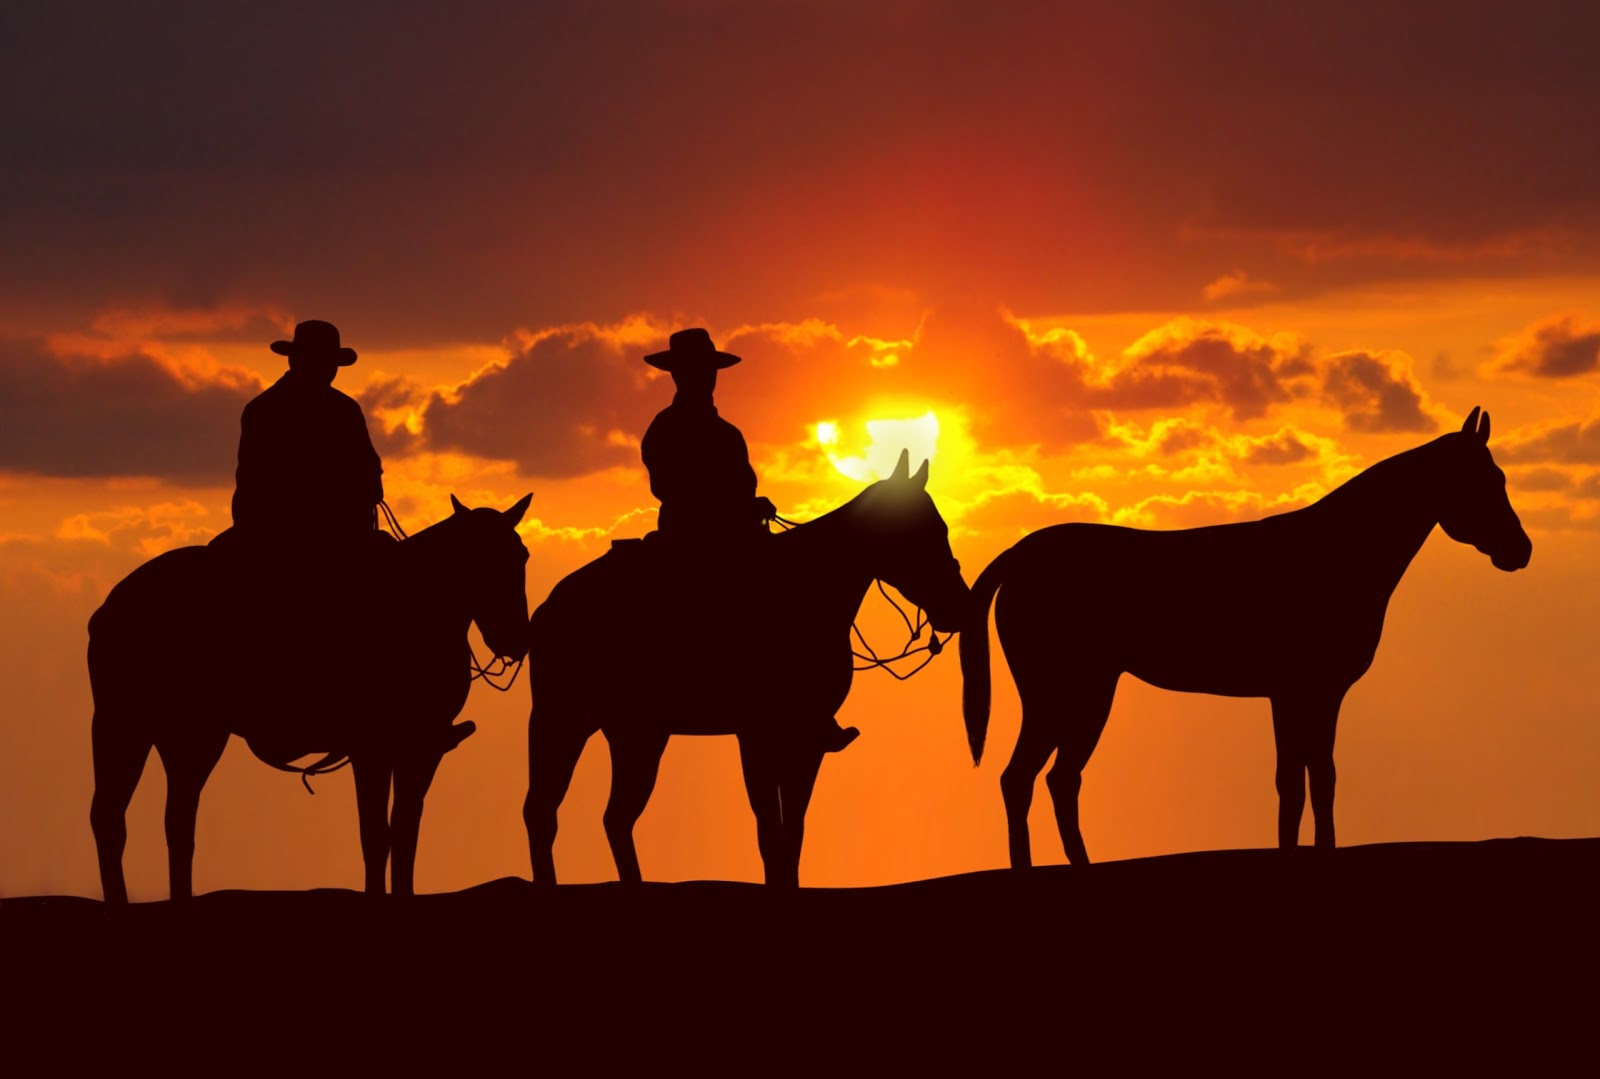 Sweethearts Of The West Cowboys on The Trail The Singing Cowboy 1600x1079